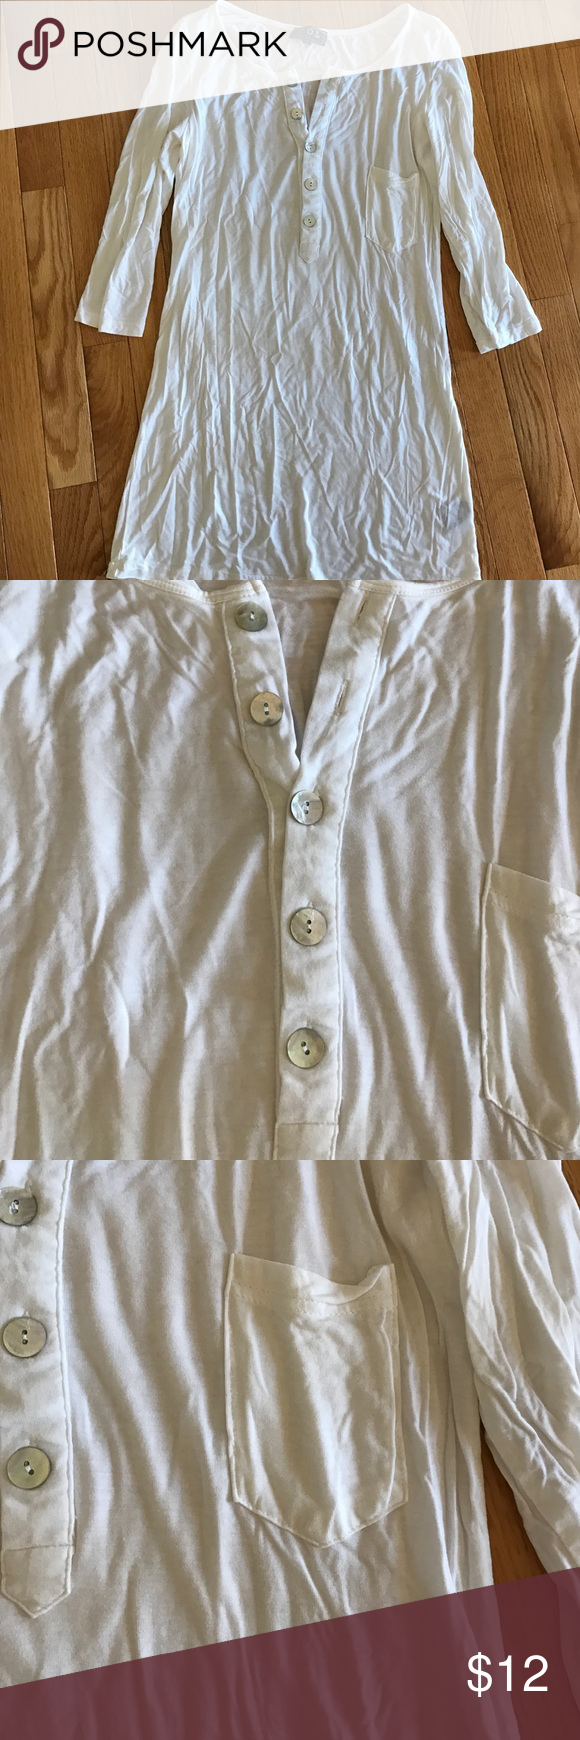 Dottie couture shirt small Worn once. Very soft dottie couture Tops Button Down Shirts